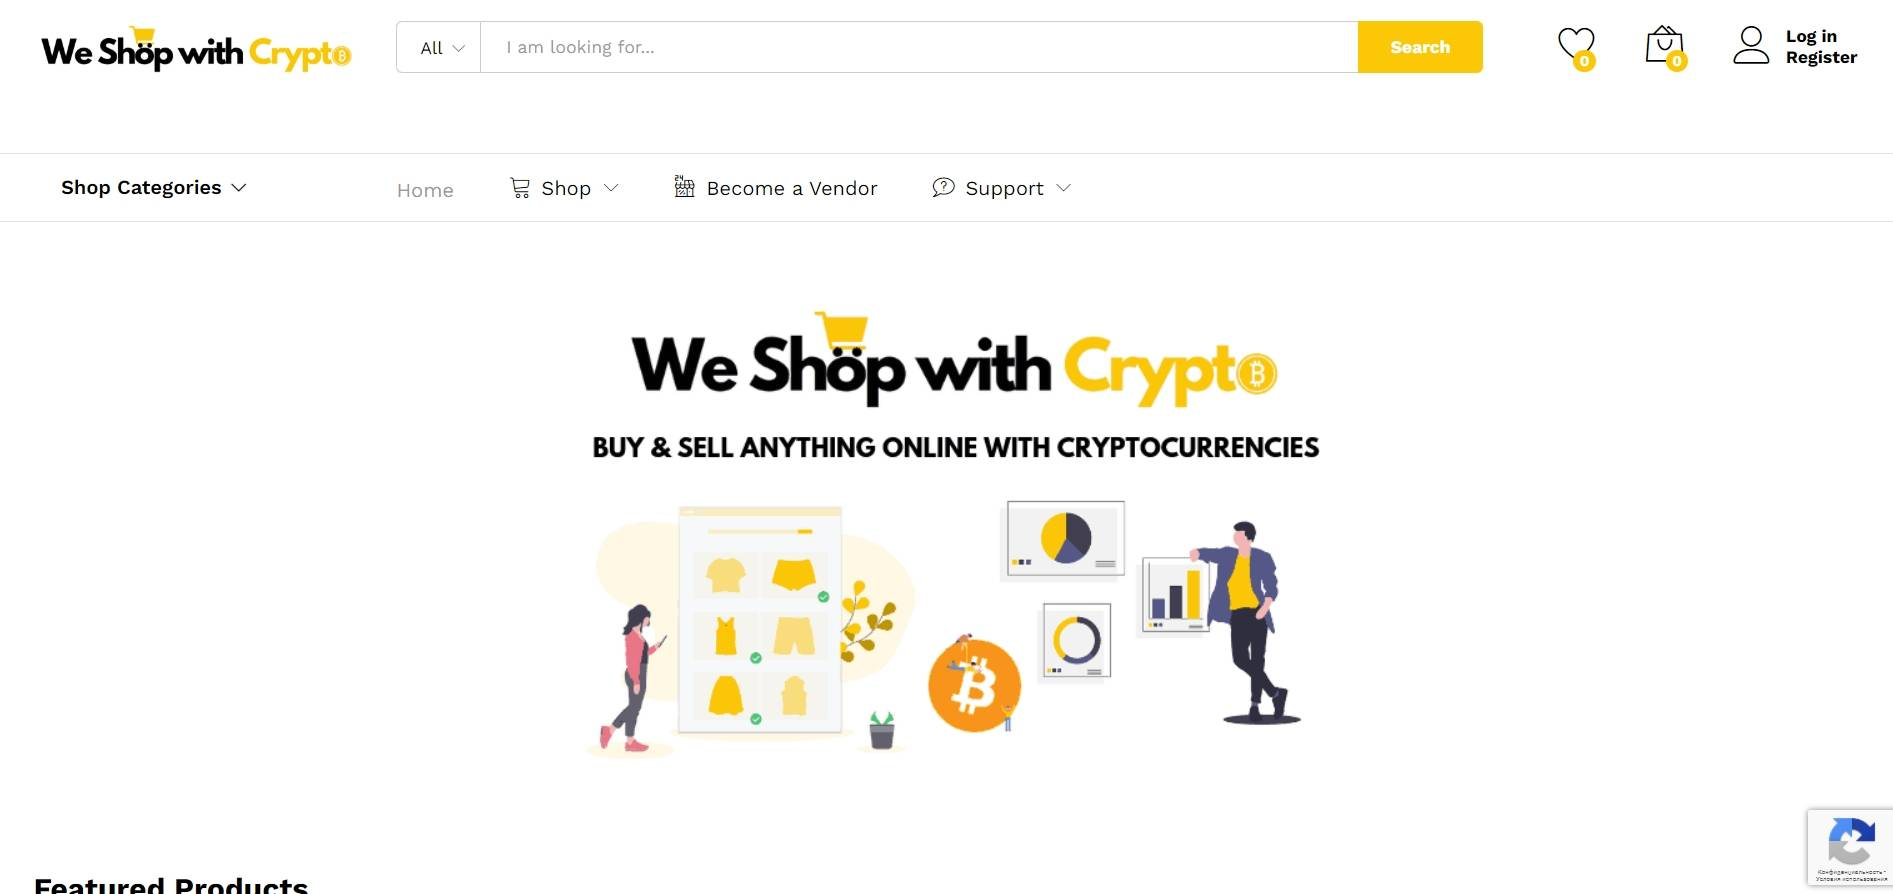 We Shop with Crypto